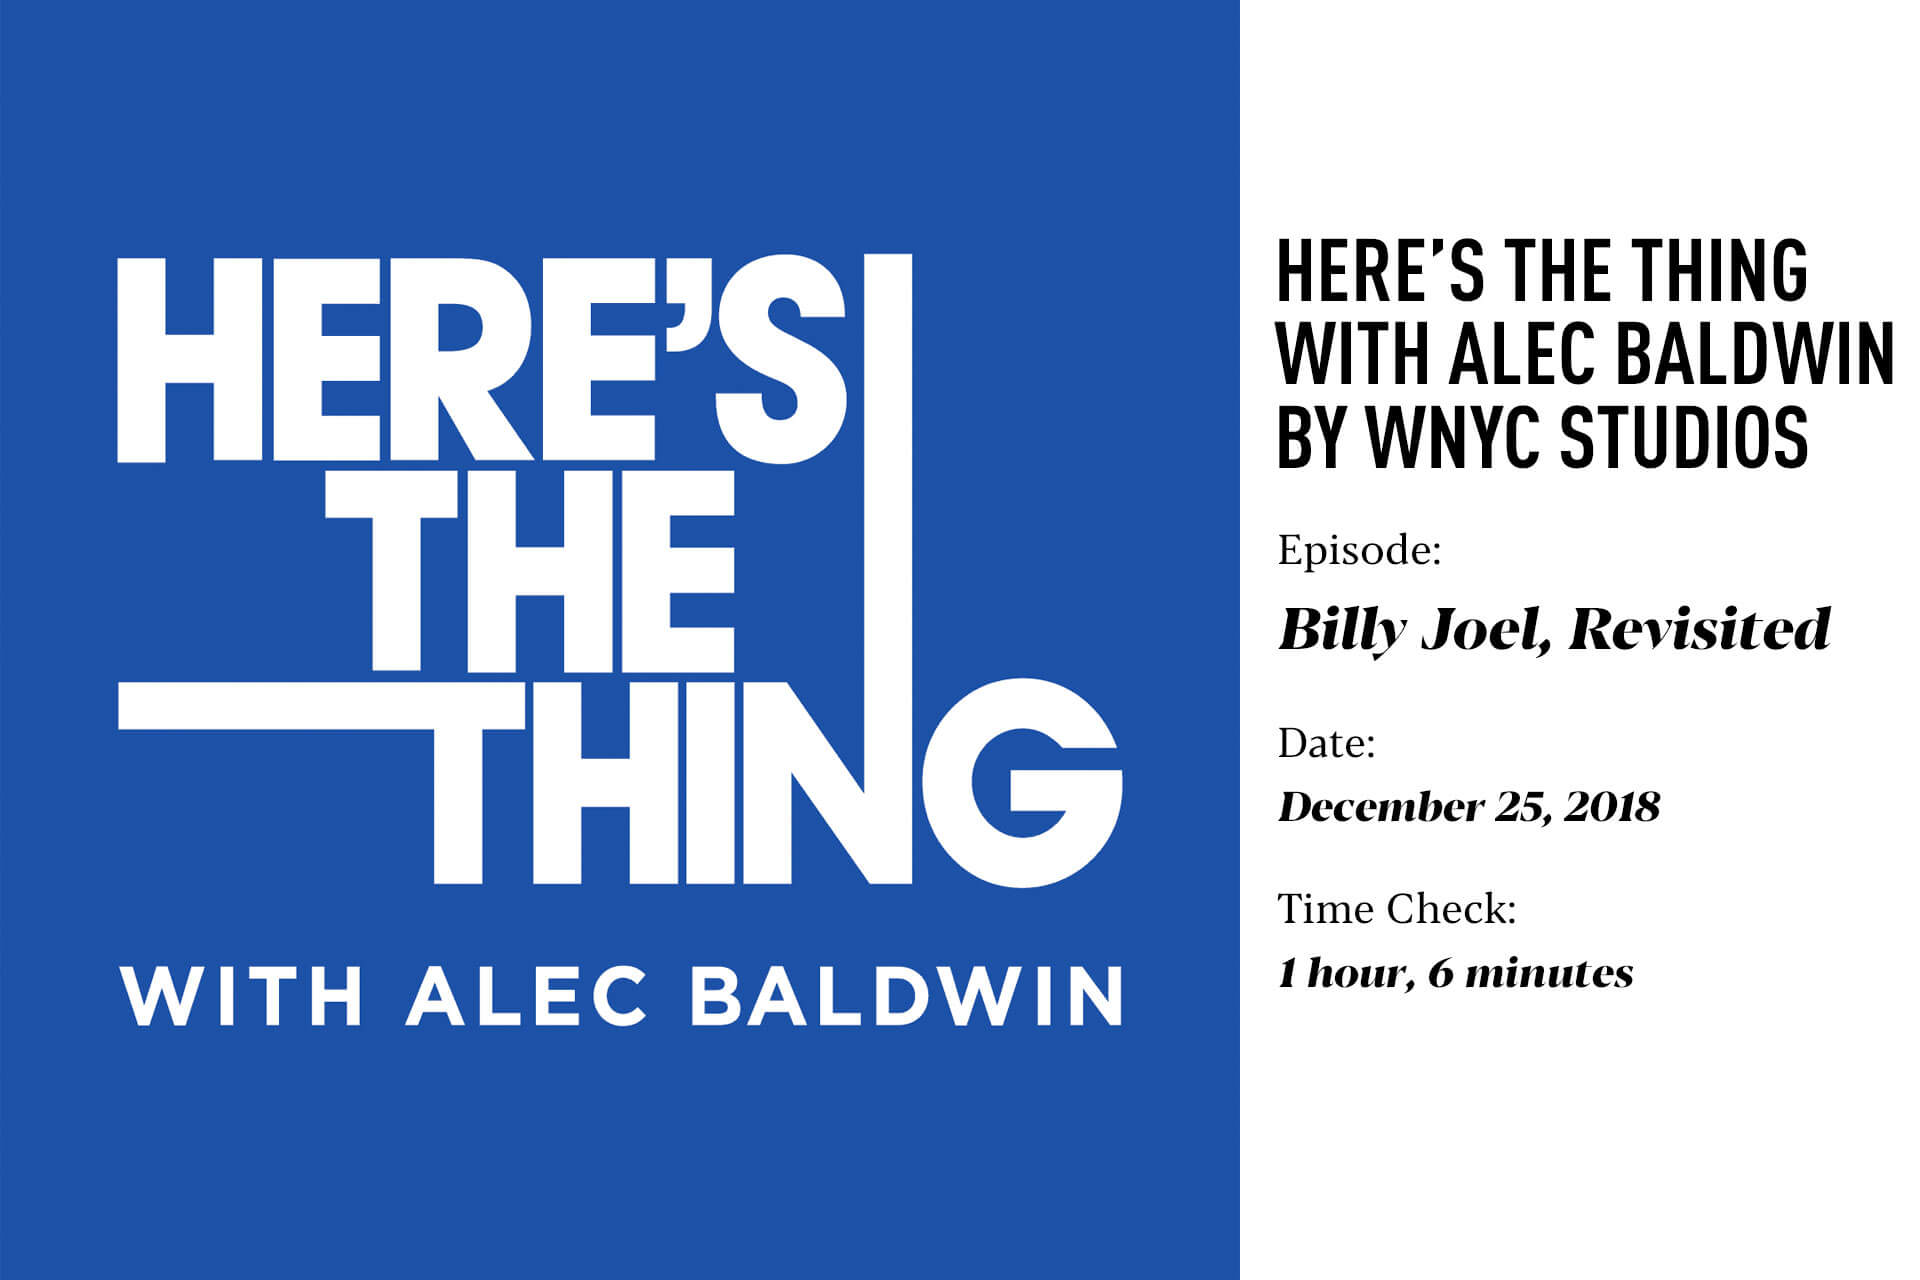 Here's the Thing with Alec Baldwin by WNYC Studio-Billy Joel, Revisited